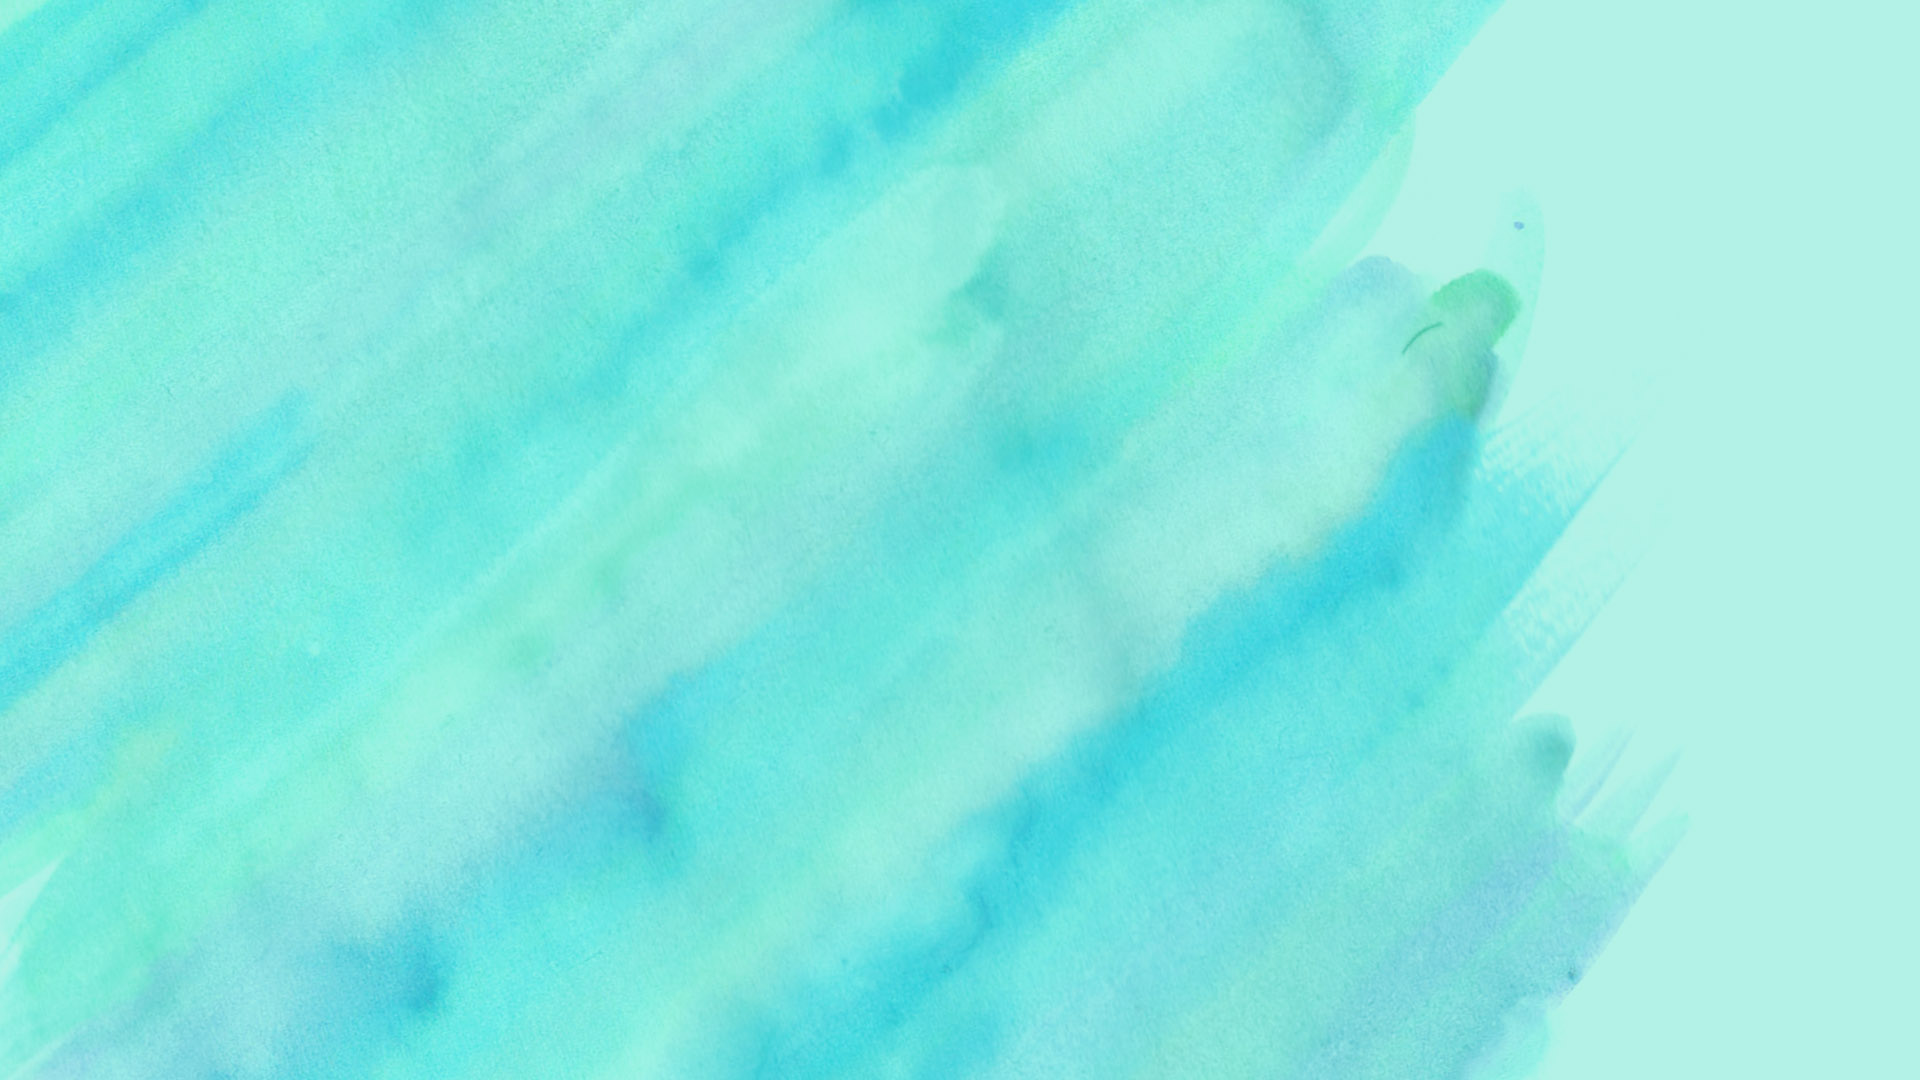 1920x1080 Blue Watercolor Wallpaper Wallpaper.wiki